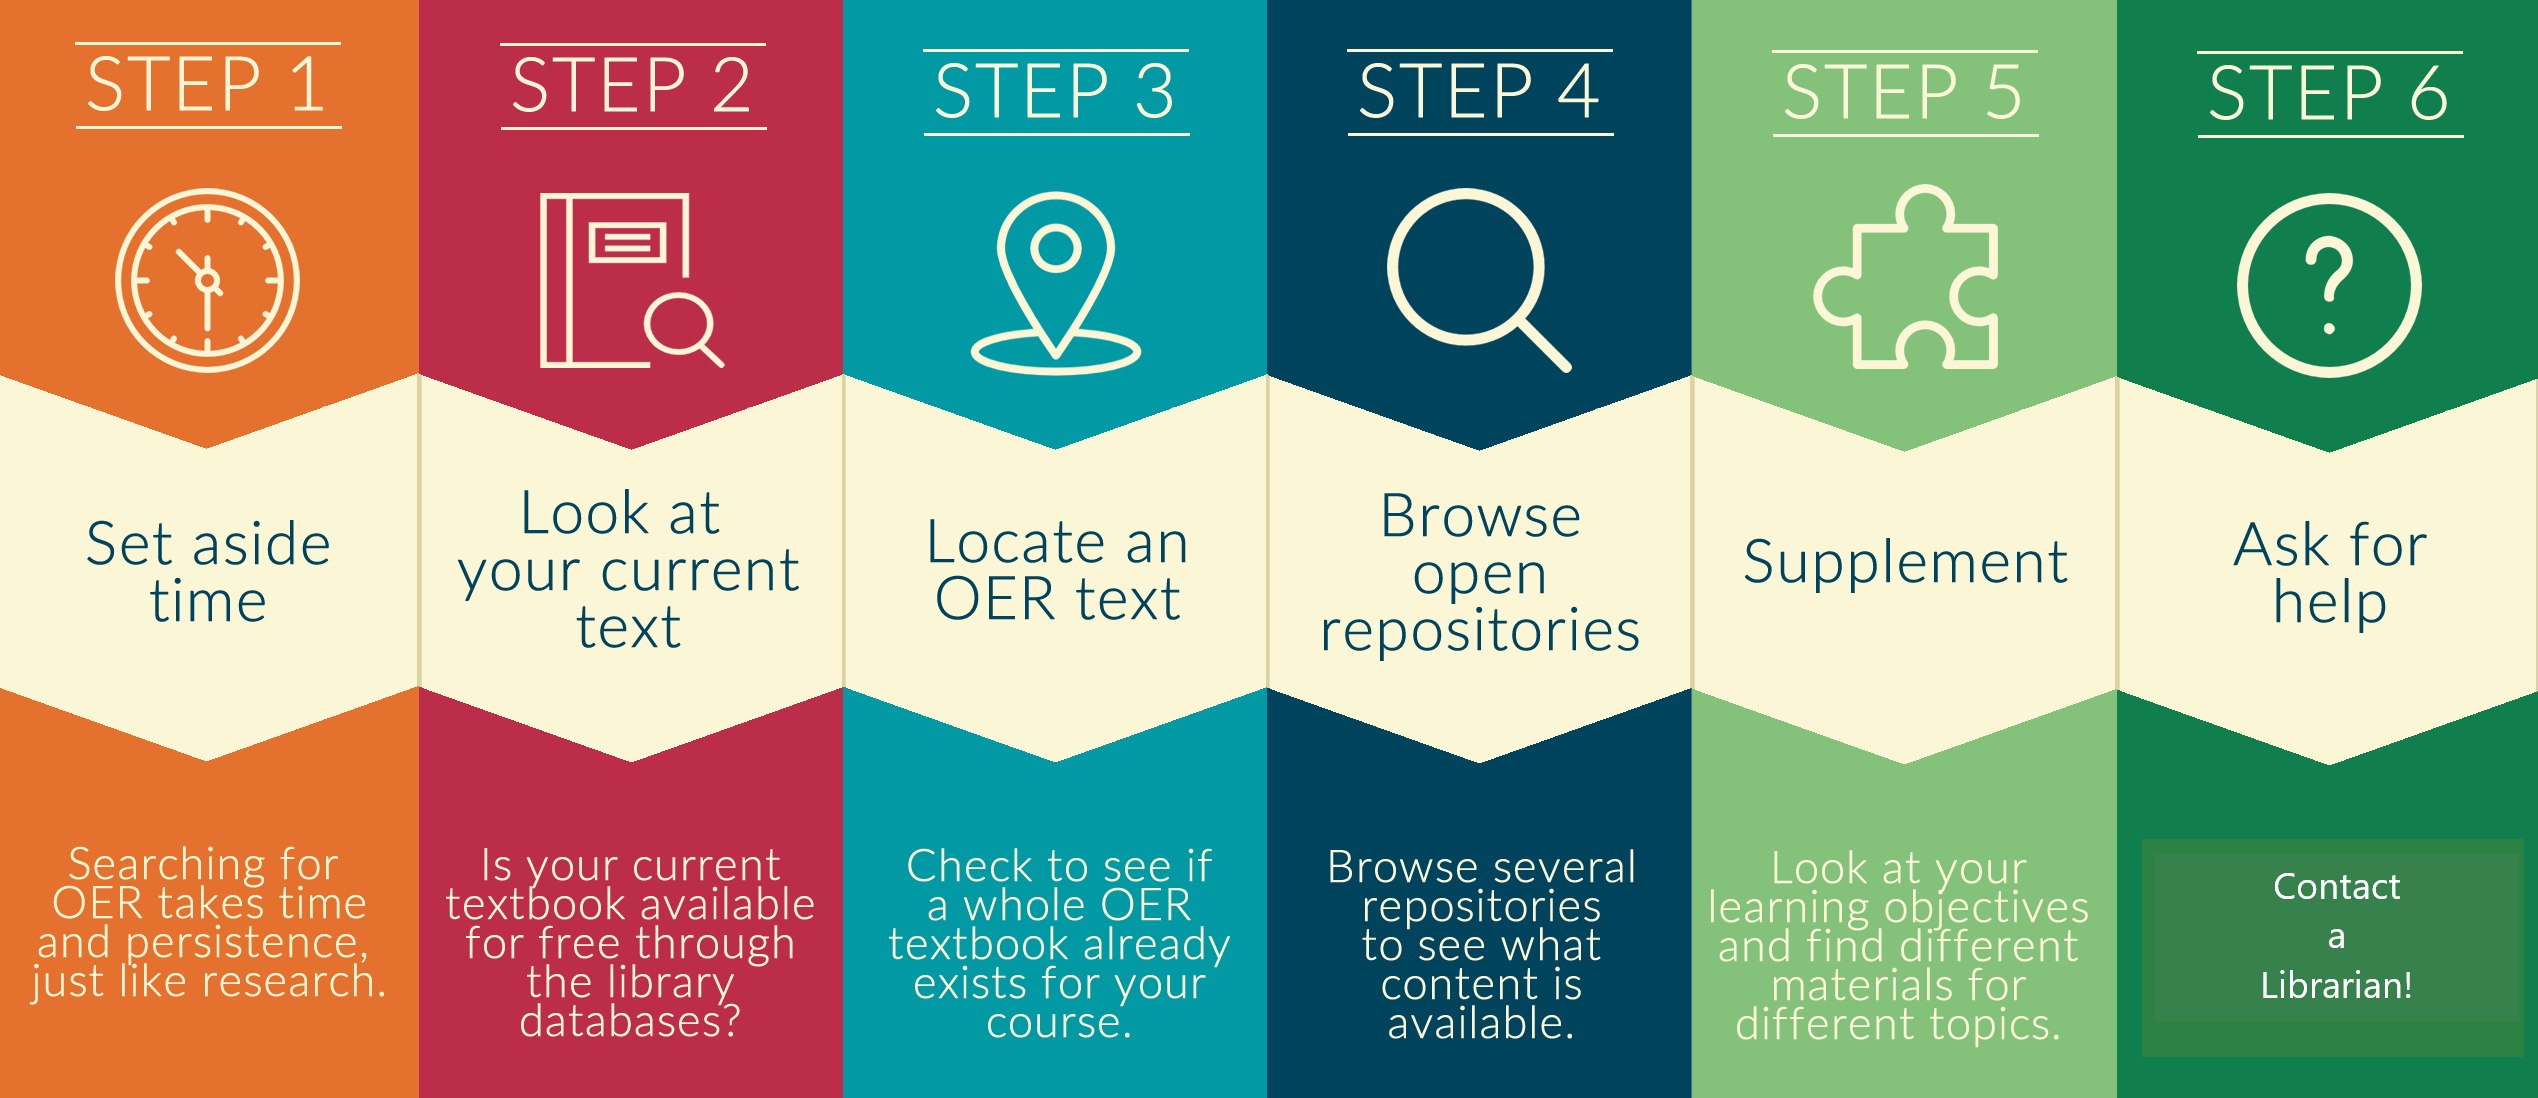 6 steps to finding OER ending with contacting a librarian for help